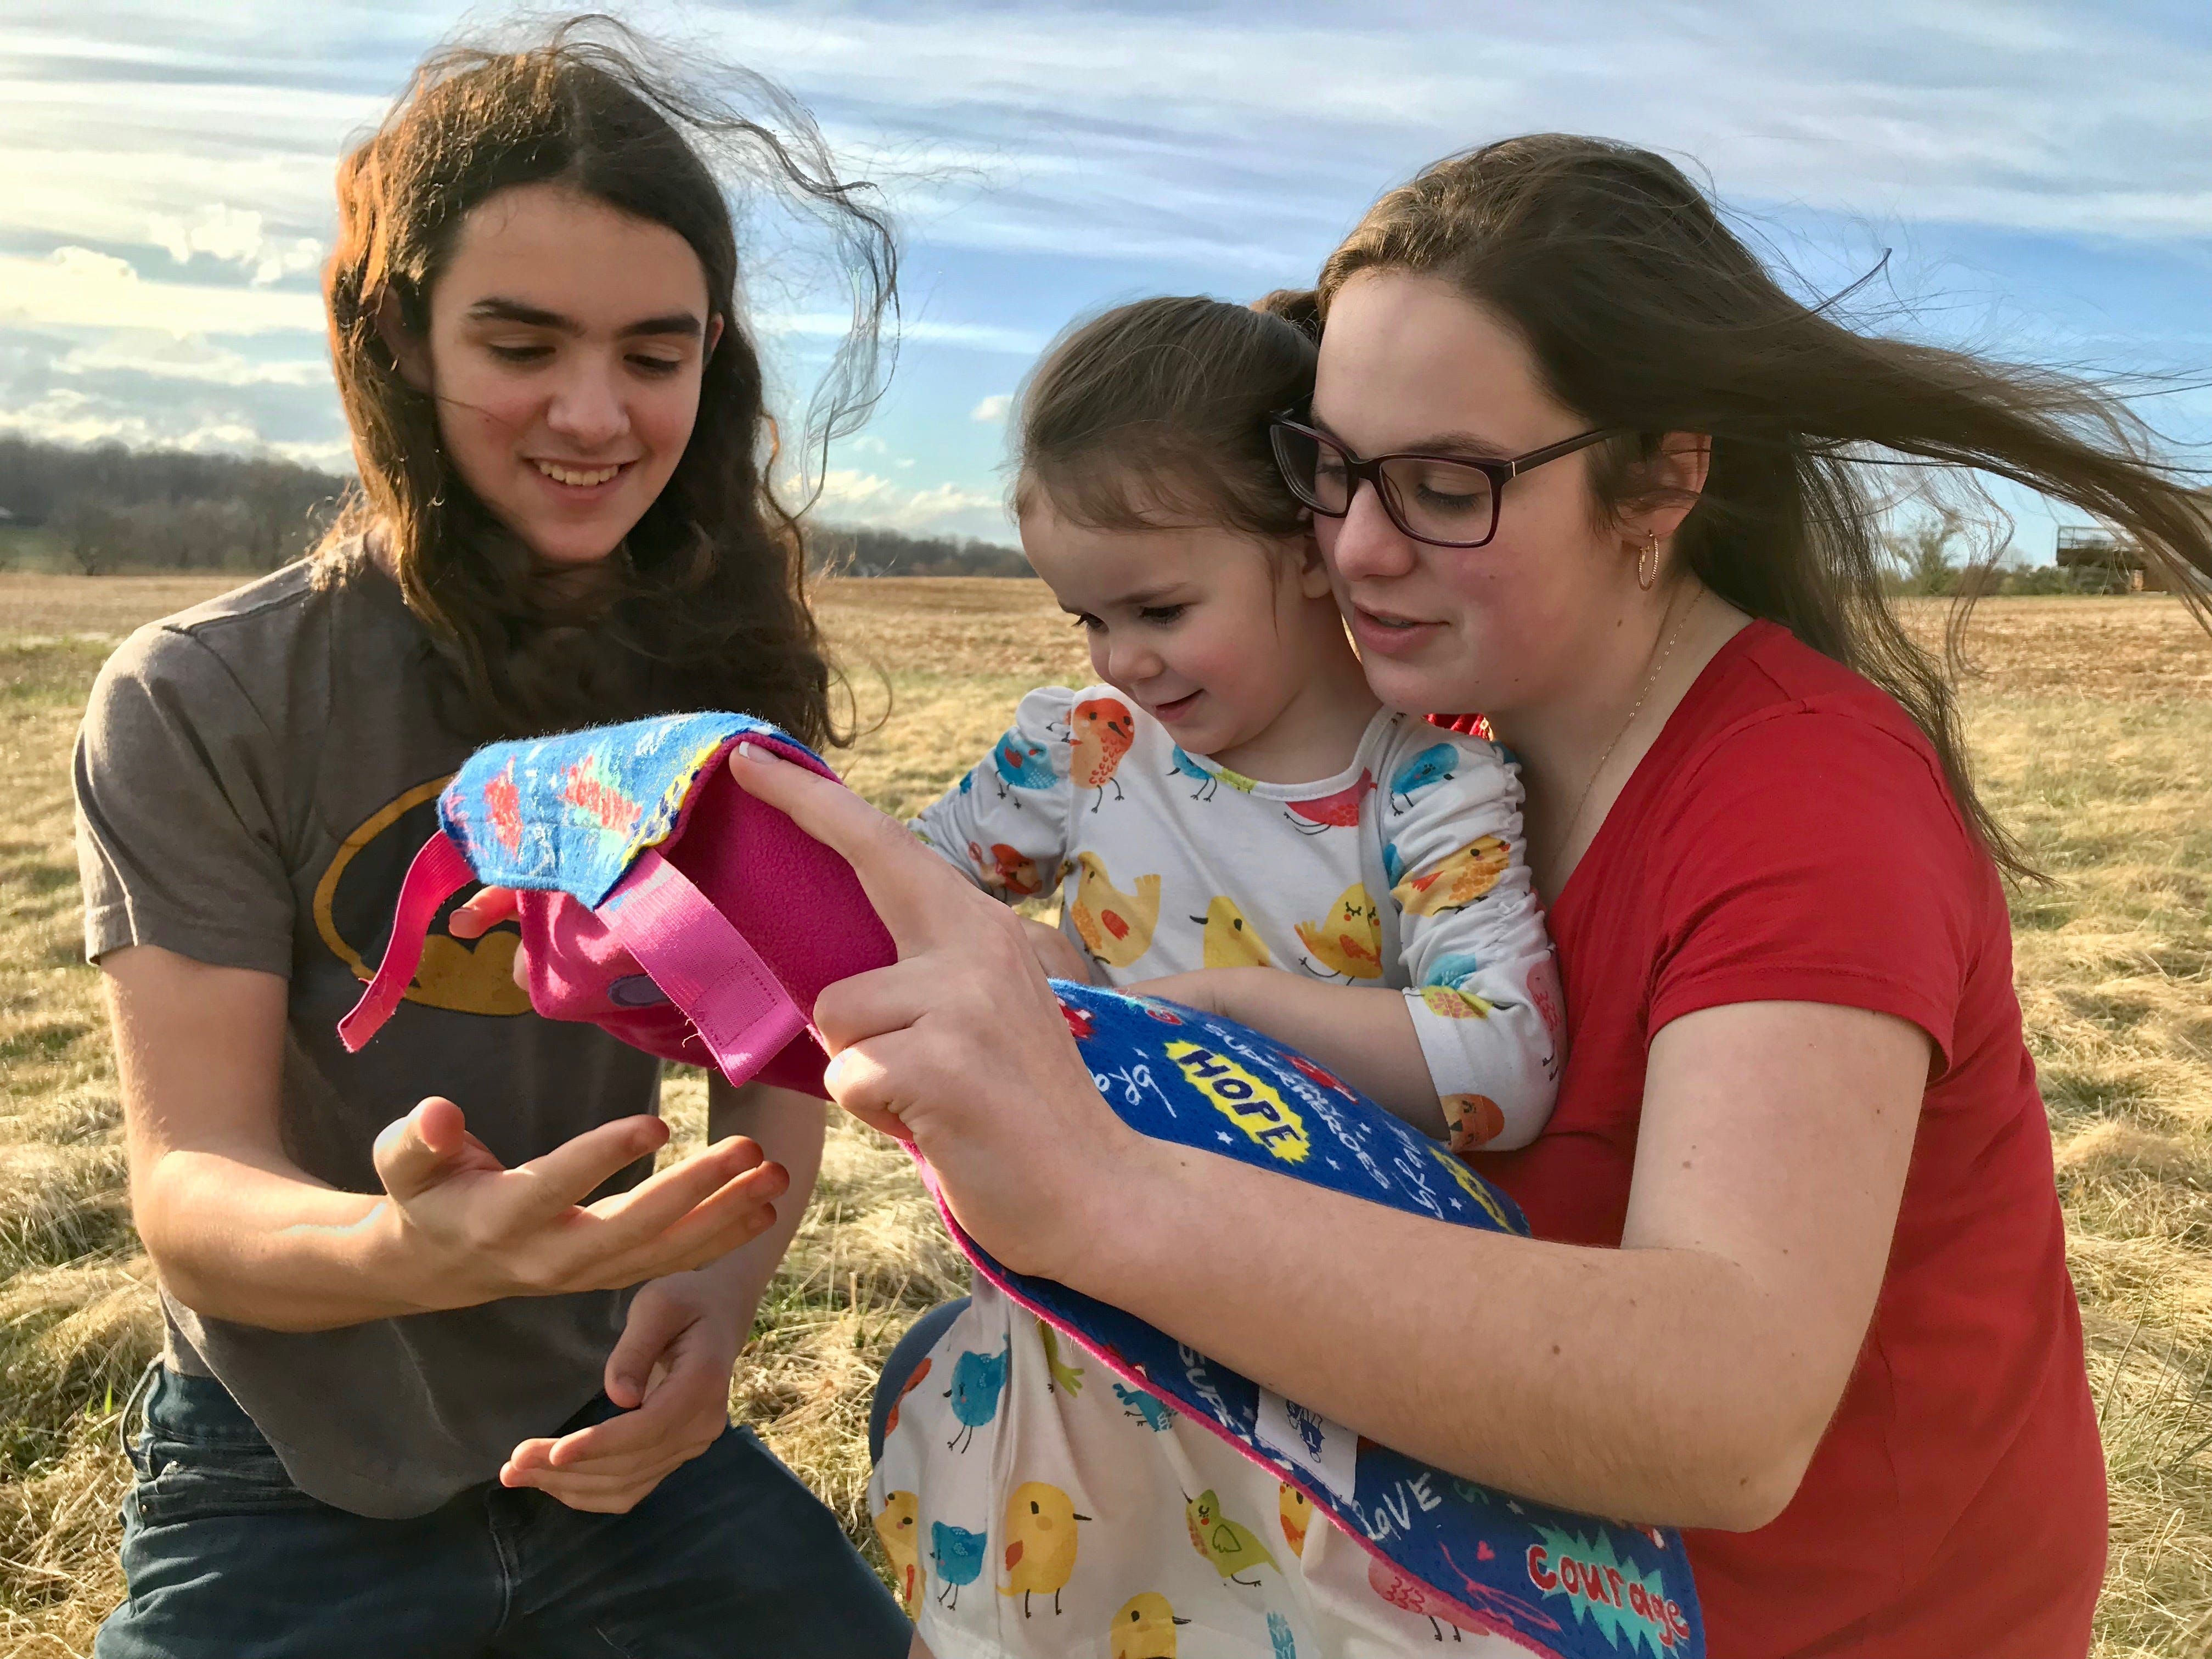 Carter Bussey, 15, and Julia Bussey, 19, hold their sister Rebecca Bussey, 3, while they look at her Tiny Superheroes cape in the backyard of their home in Ladd, Virginia, on Friday, March 15, 2019. Rebecca Bussey has the rare disease Systemic Juvenile Idiopathic Arthritis.